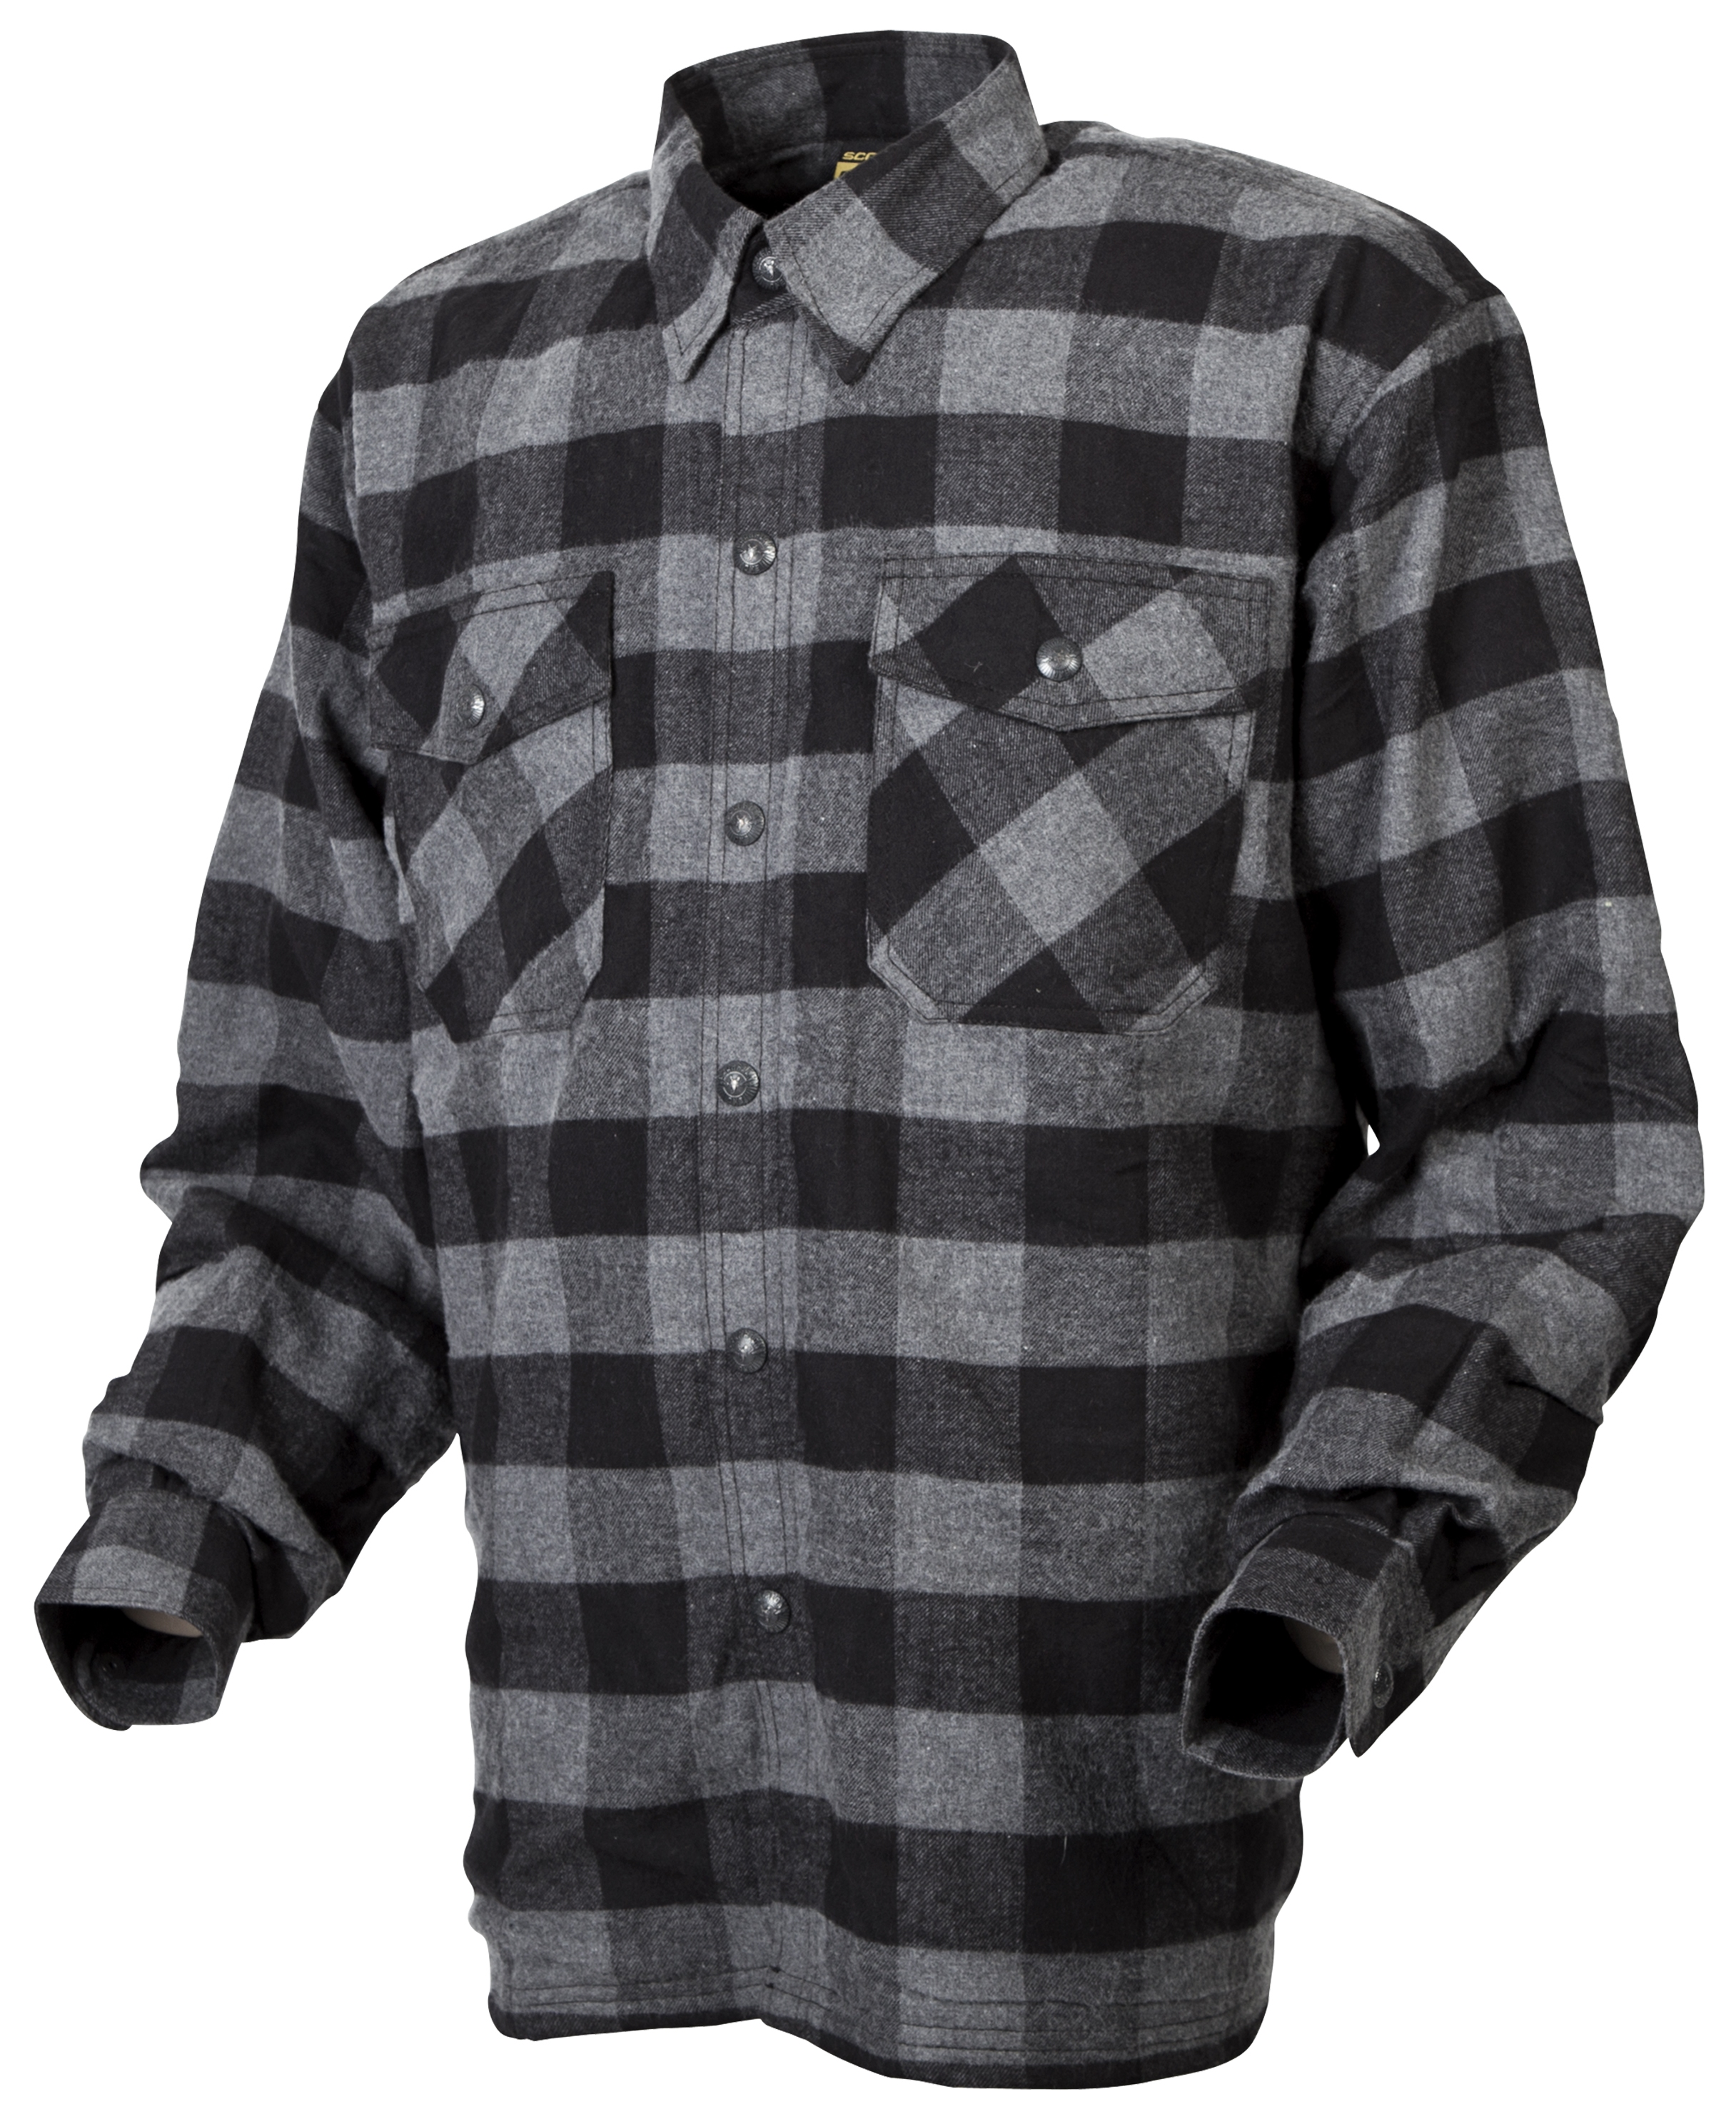 Scorpion covert flannel shirt revzilla for What are flannel shirts made of